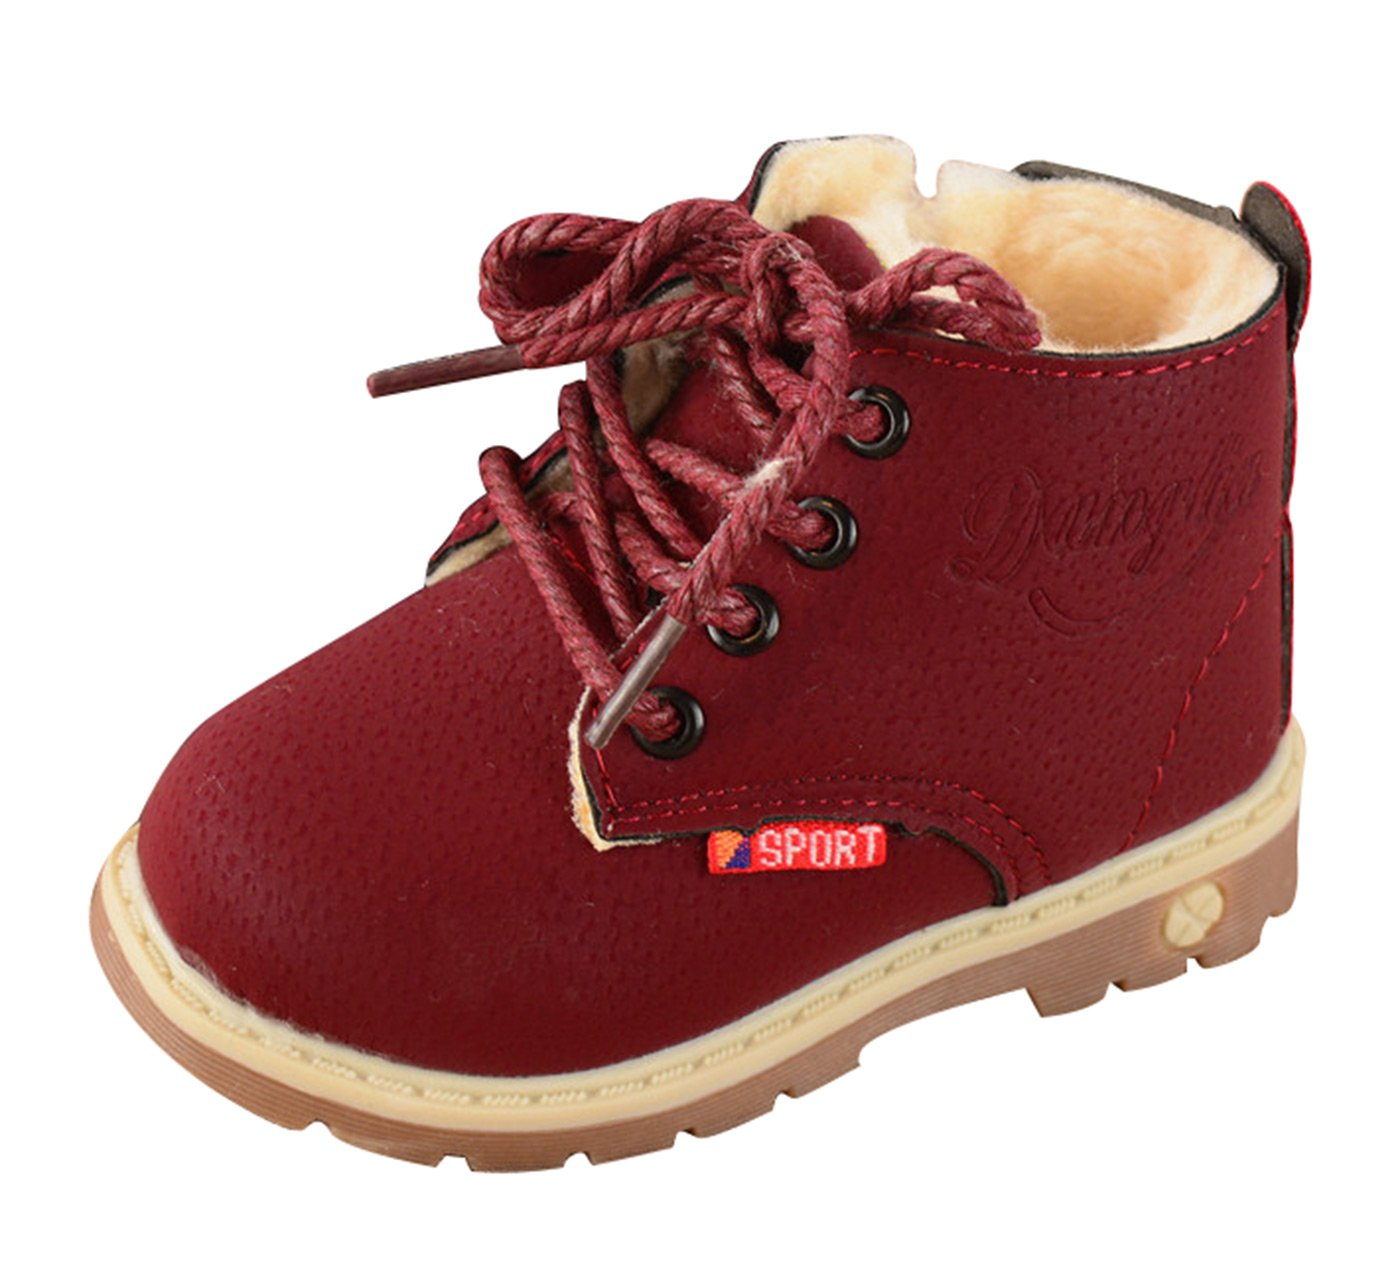 Happy Cherry Girls Boys Army Style Martin Boot Plush Leather Shoes Winter Warm Casual Shoes Vintage Antislip Fur Lined Short Martin Ankle Boots Wine Red Size 25